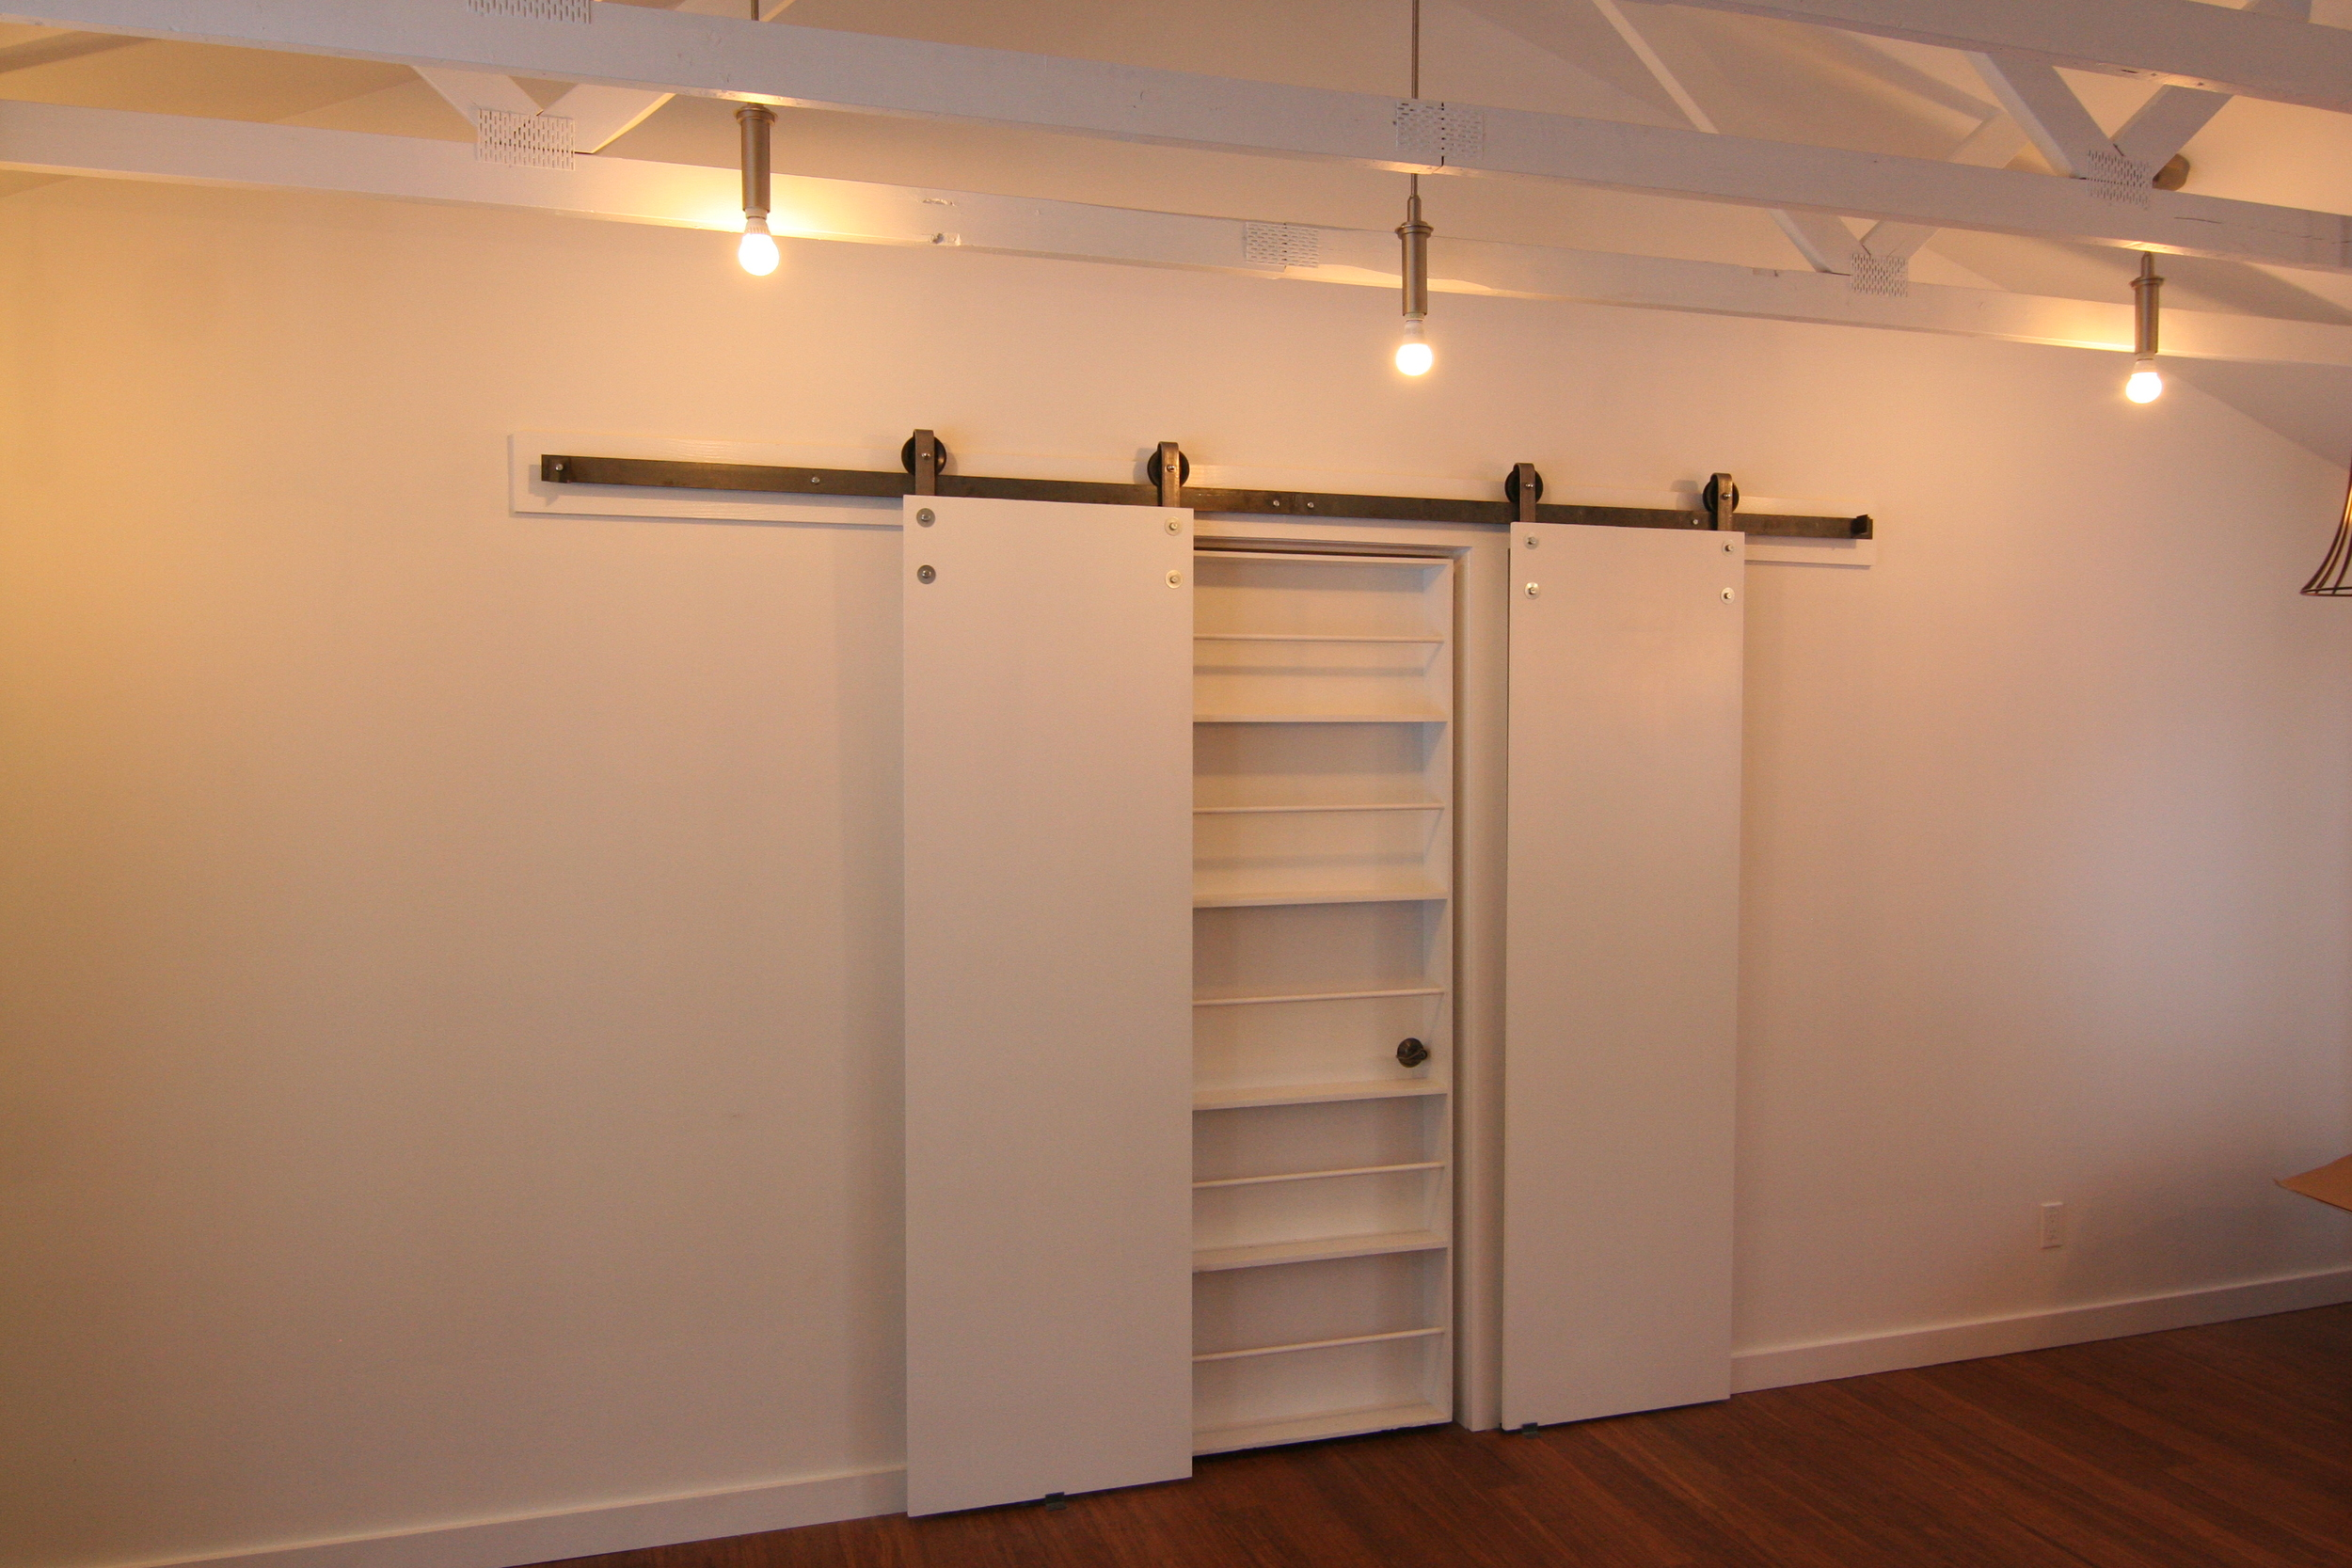 Same idea with the hangers mounted on the other side of the doors.  This is the biparting system used here for a shelving unit.